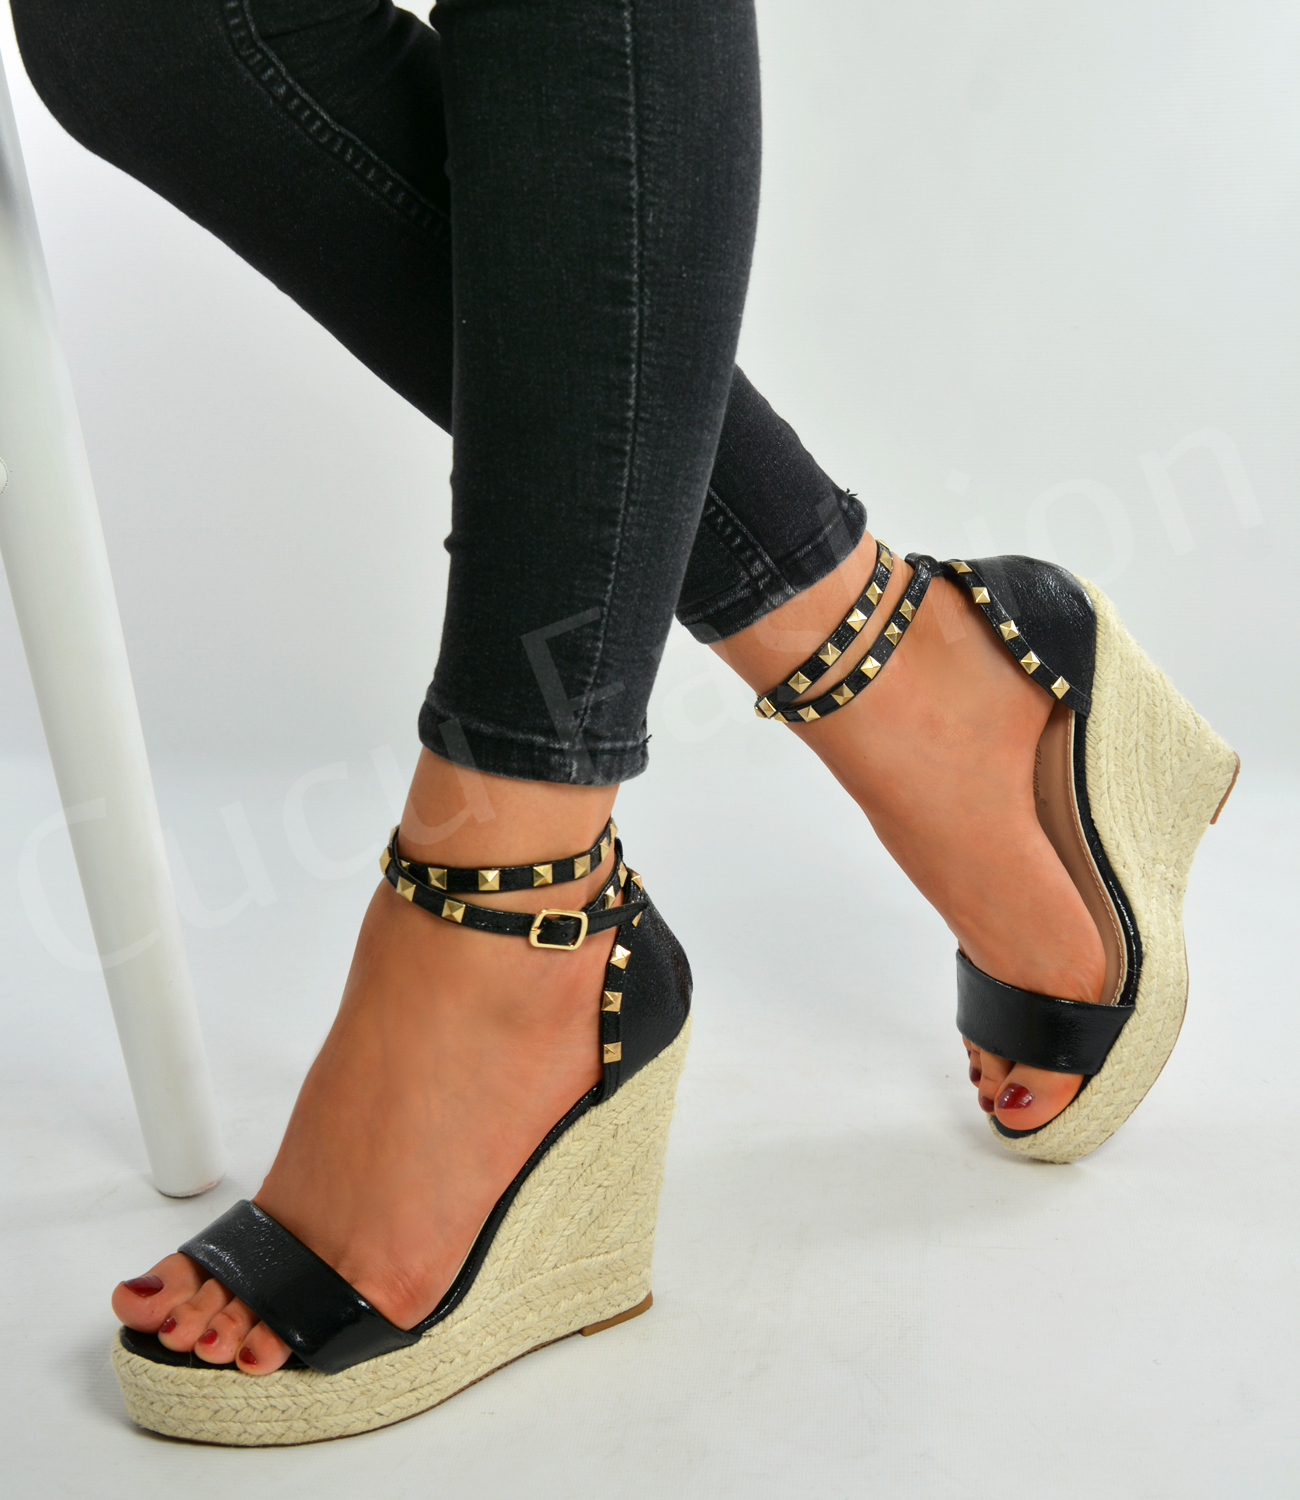 Home Women Pumps & Heels Wedges Women's Pumps, Heels and Wedges The shoe of your dreams is waiting in the selection of pumps, heels, wedges, and sandals for women at Payless.